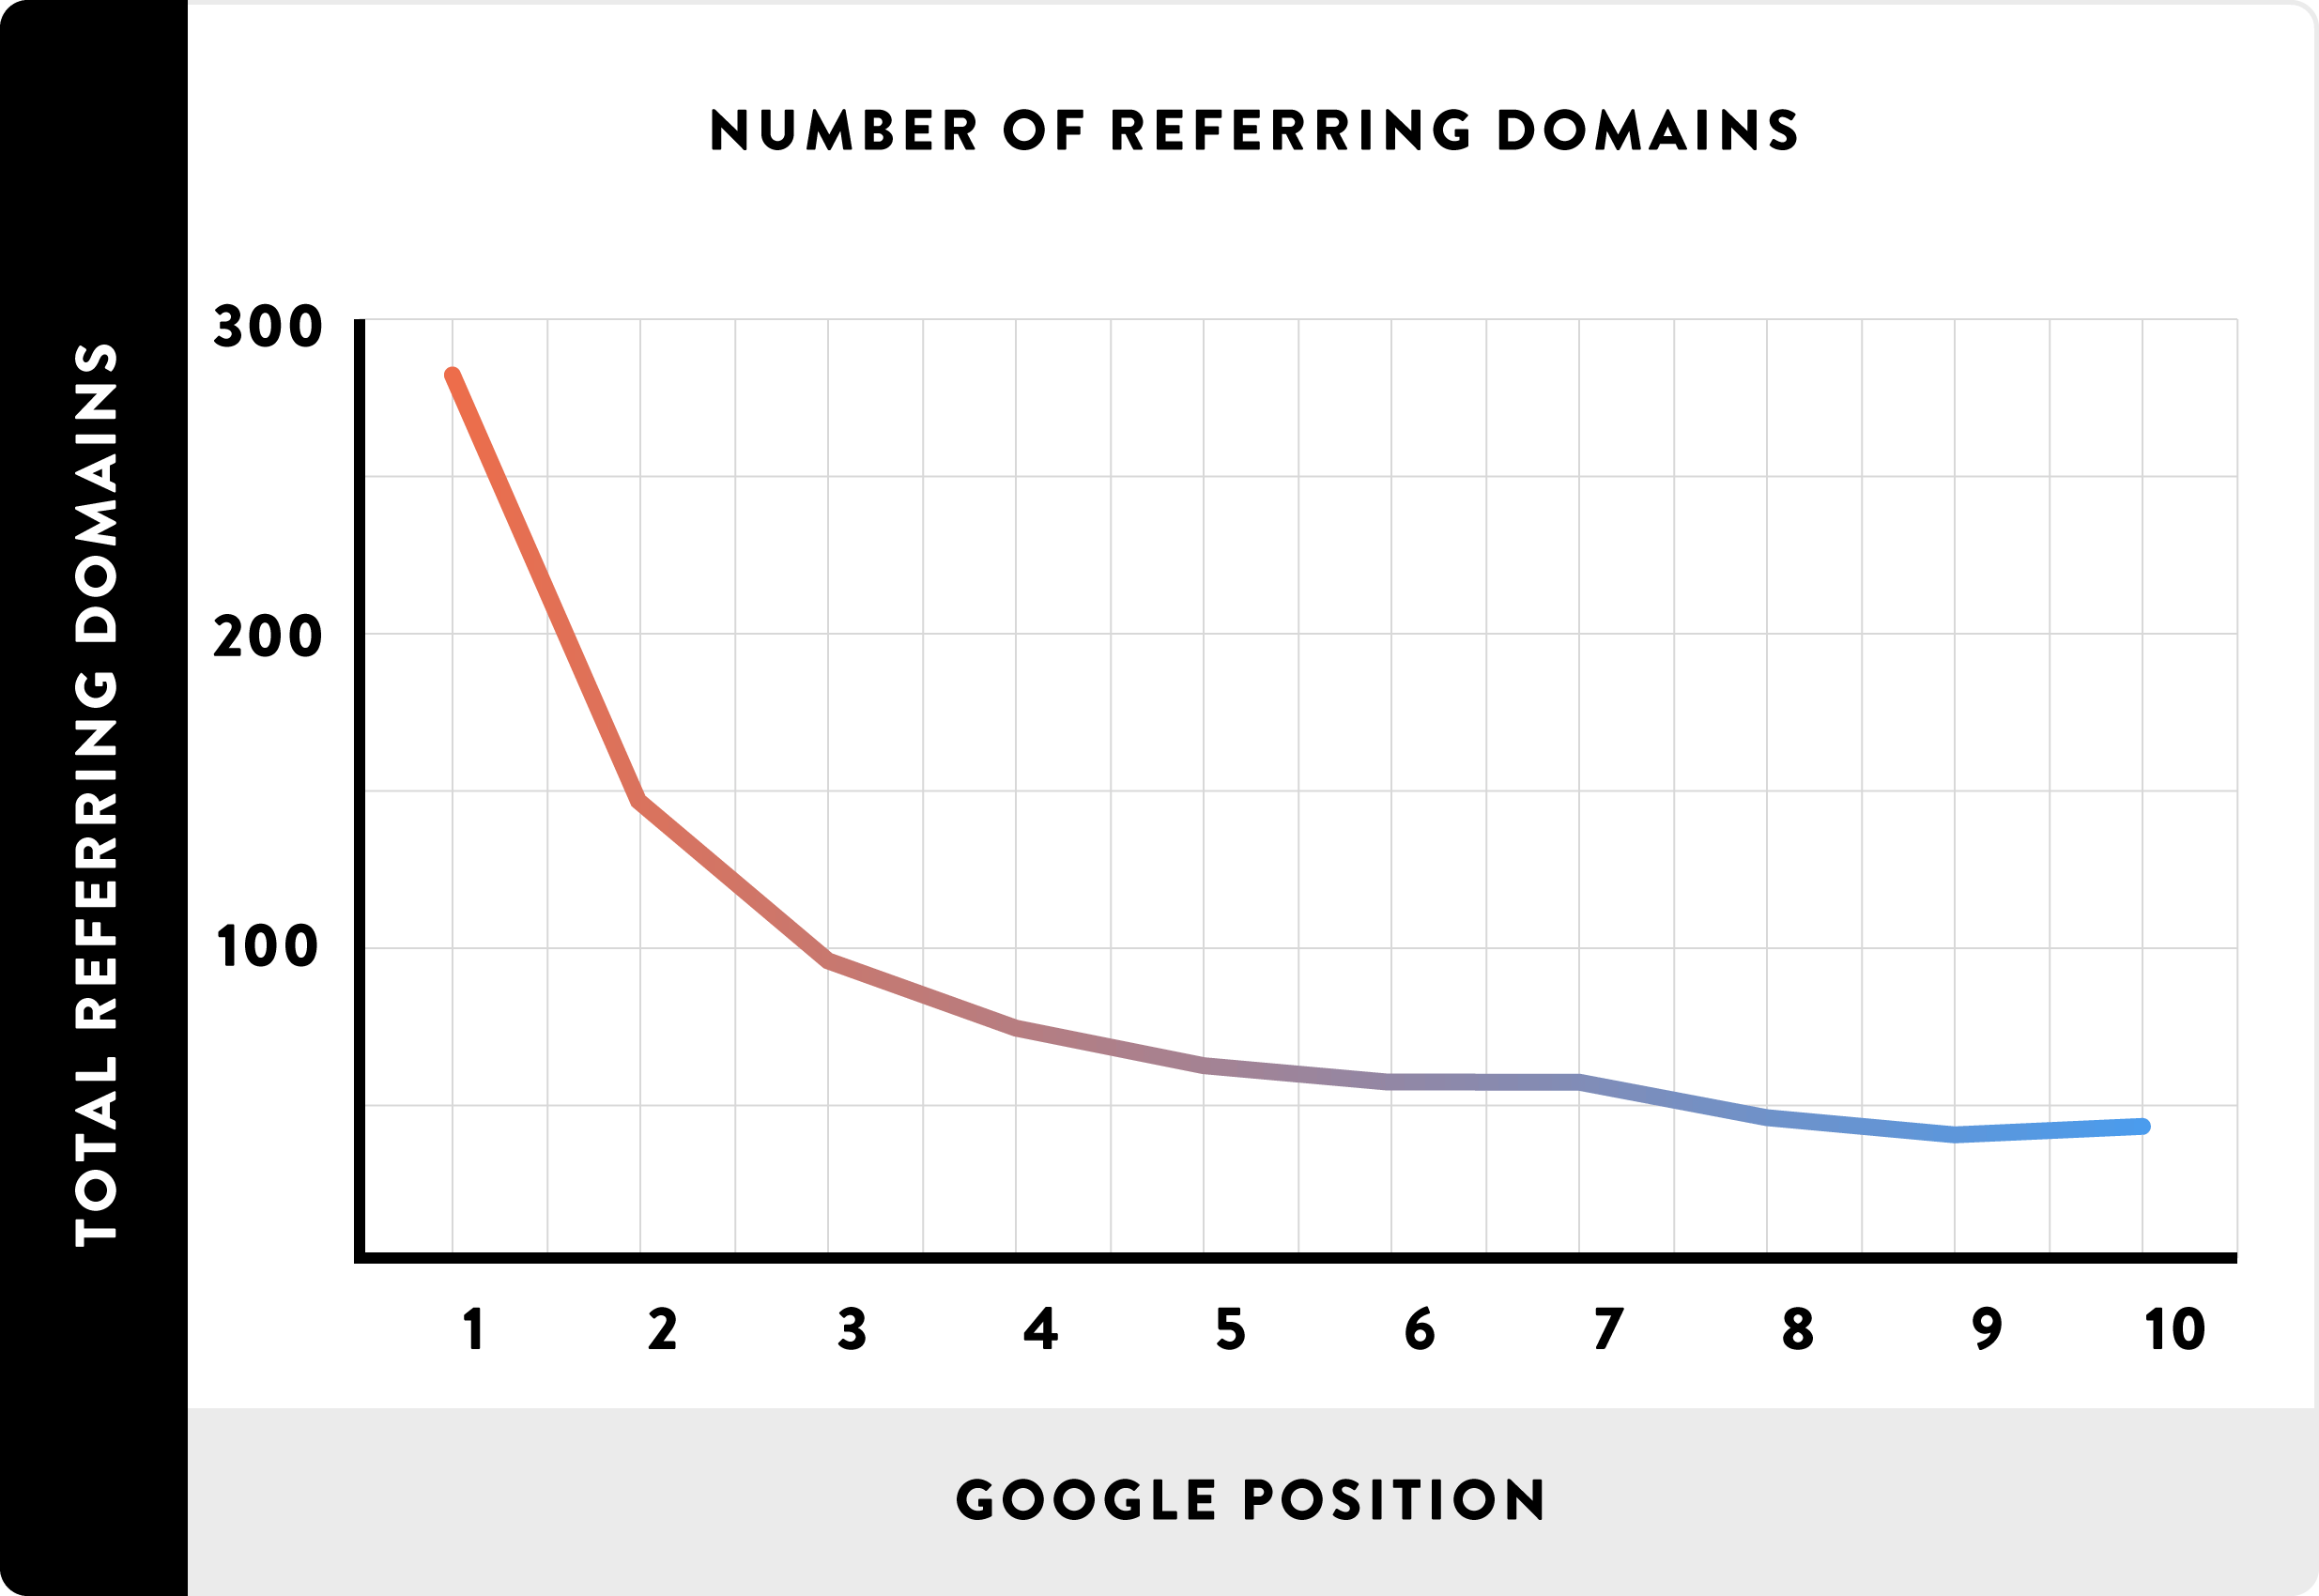 05_Number of Referring Domains_line